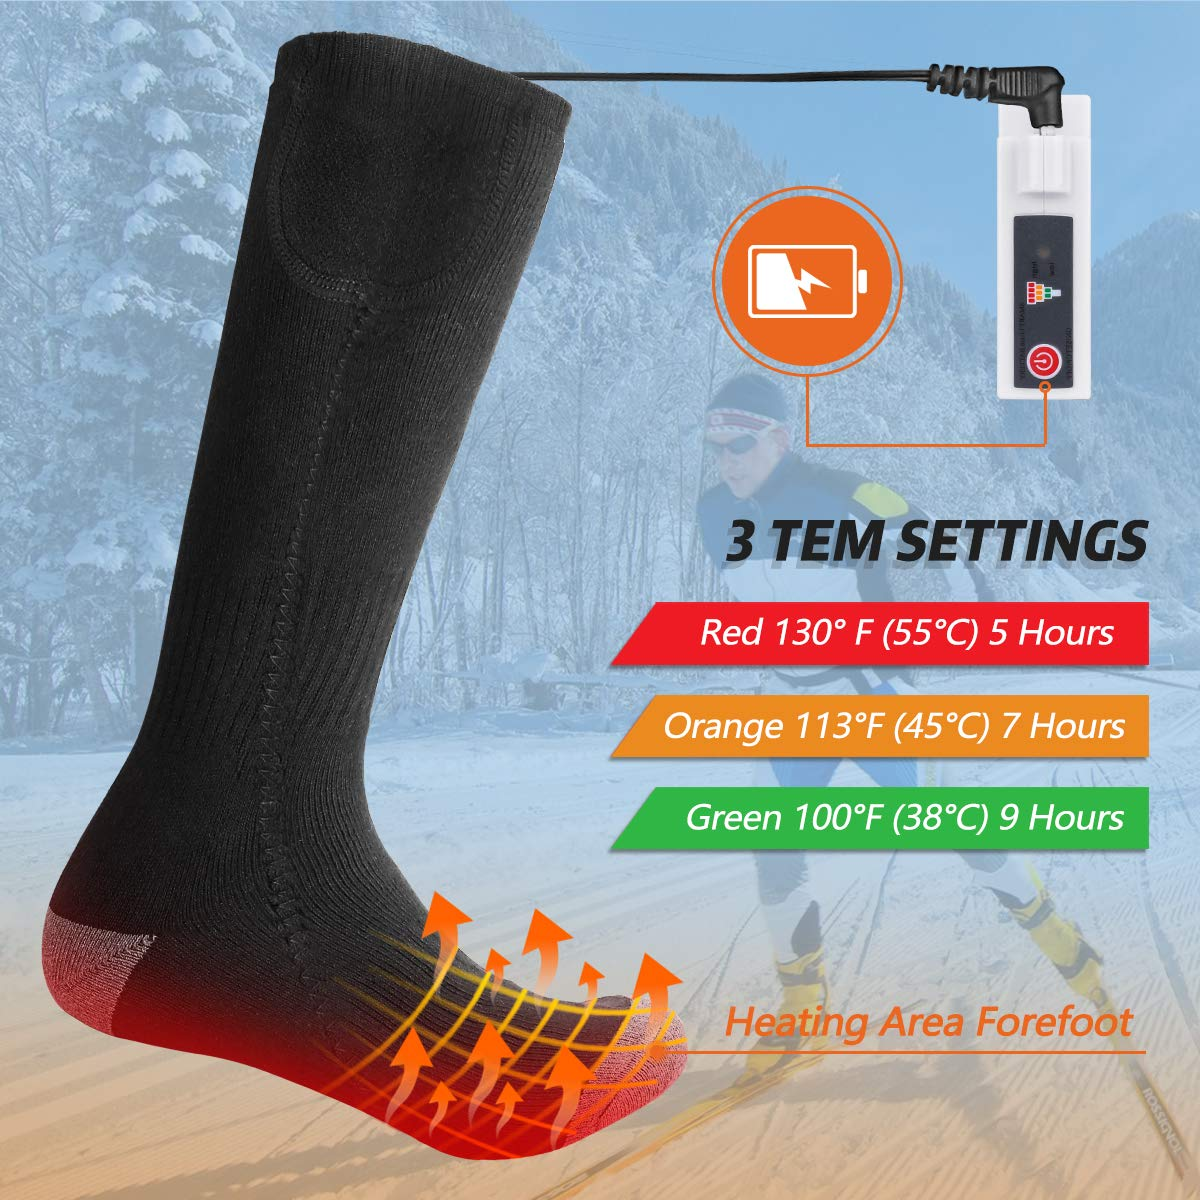 Winter Socks Sport Outdoor QiMH Electric Heated Socks Rechargeable Battery Powered Comfortable Socks Climbing Hiking Skiing Camping Foot Boot Heater Warmer for Men Women